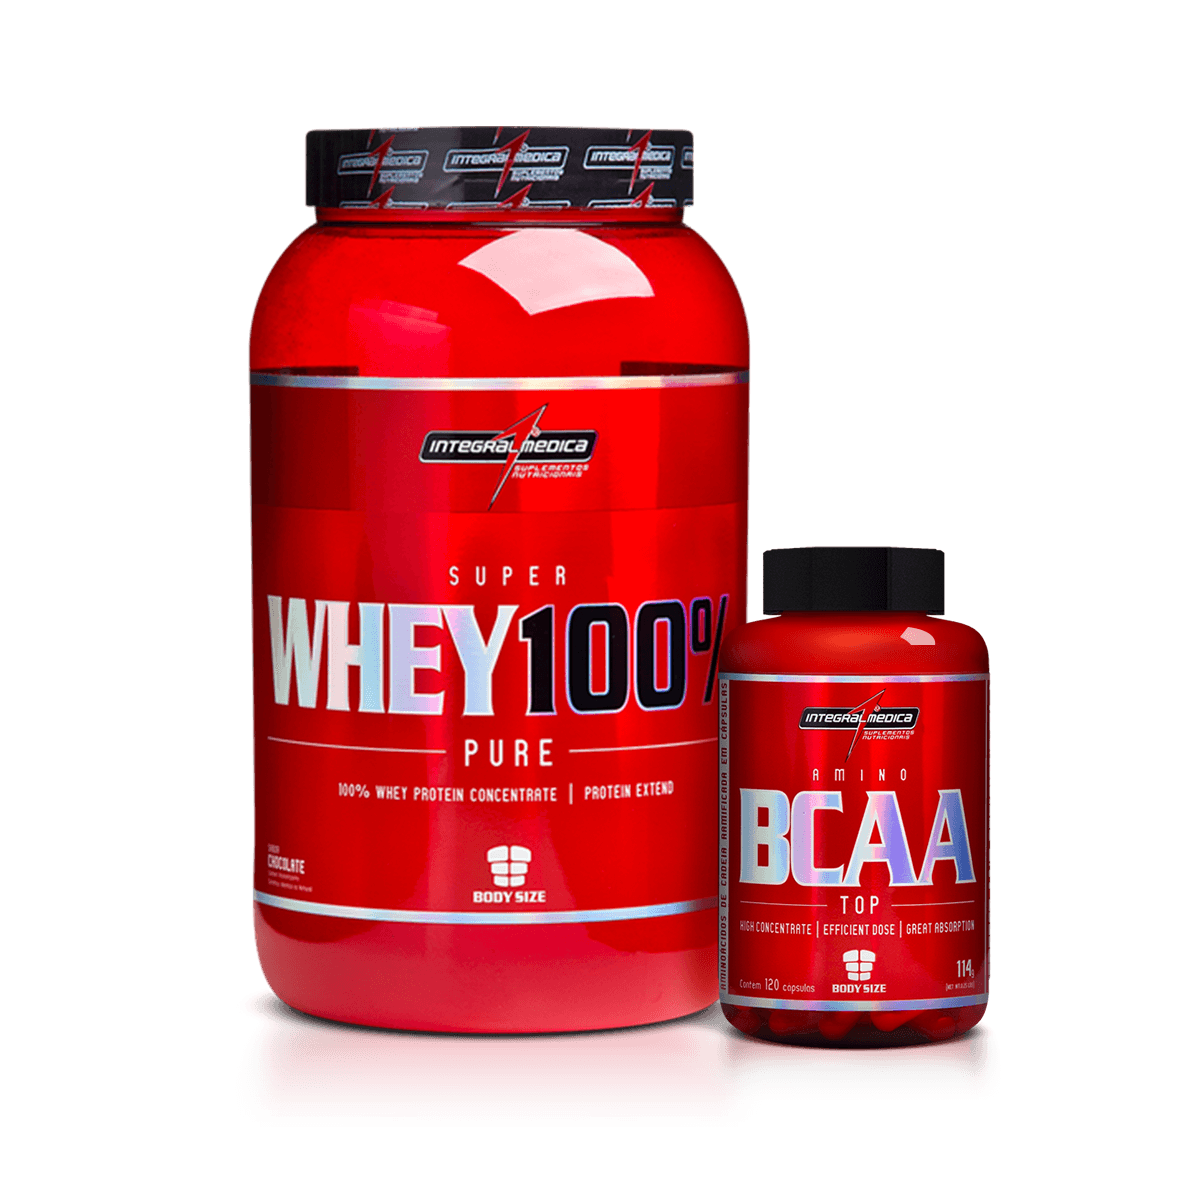 642b77159 Combo Super Whey + BCAA Top IntegralMedica - Loja do Suplemento